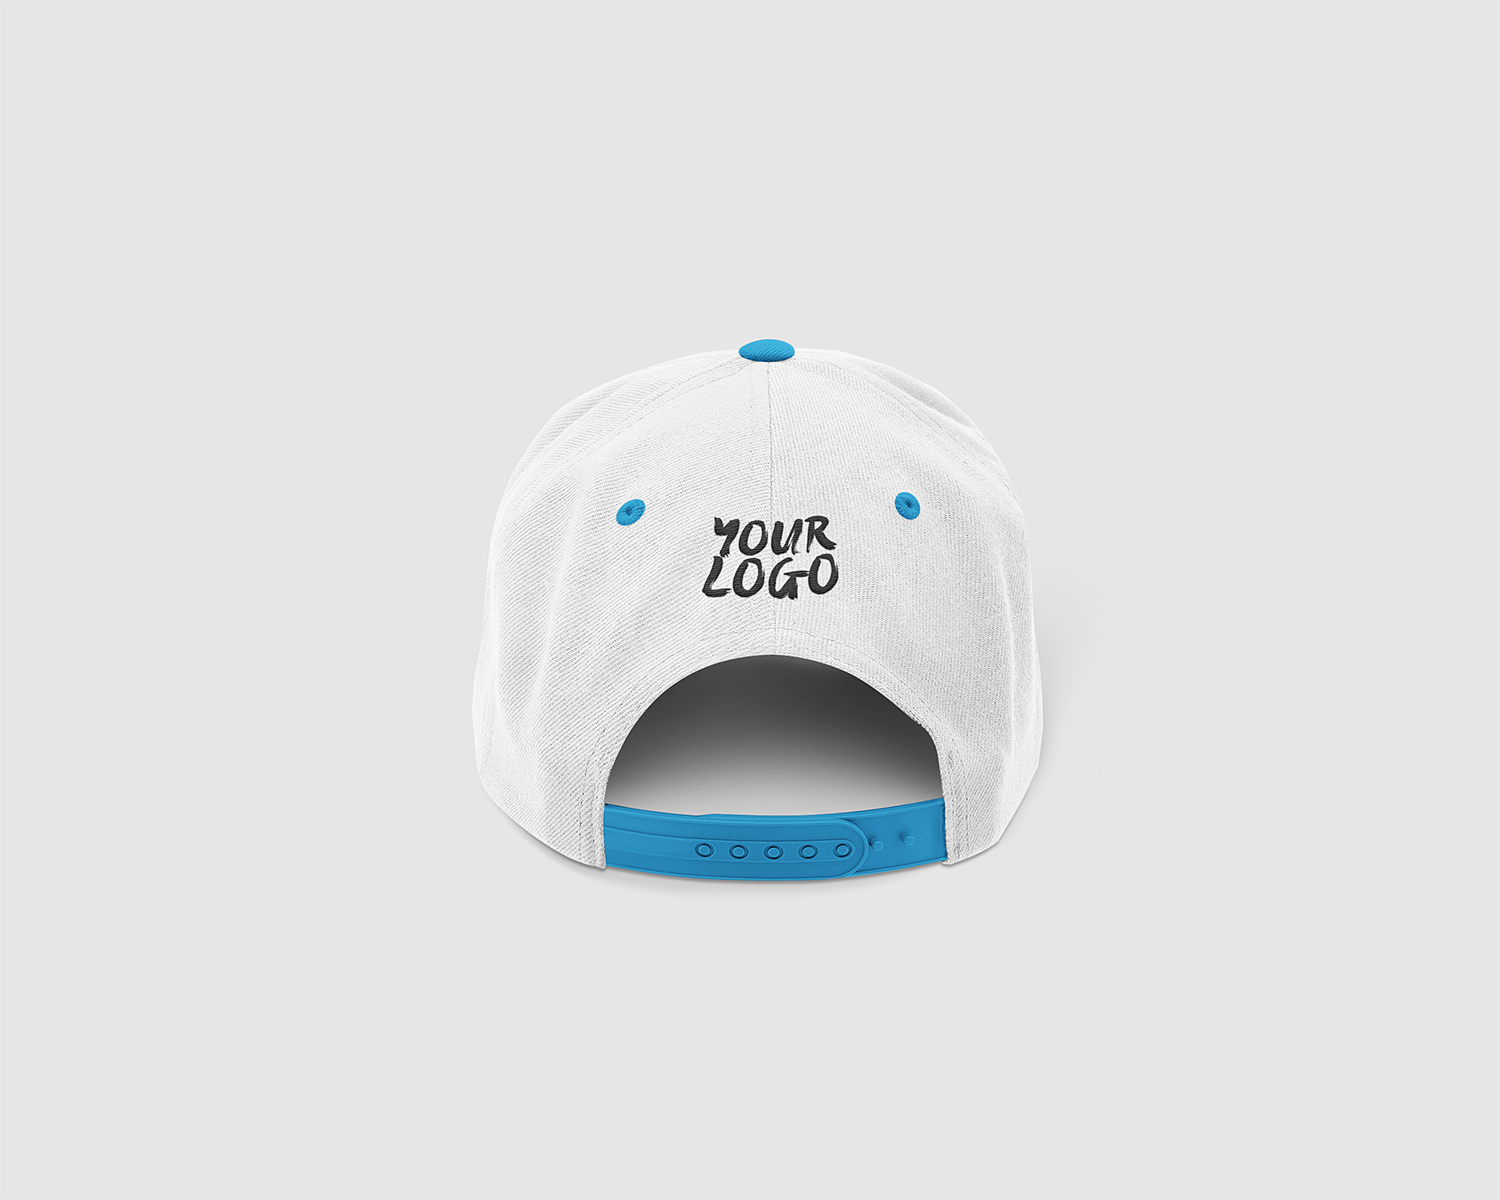 Free Label Exhibition Cap Mockup